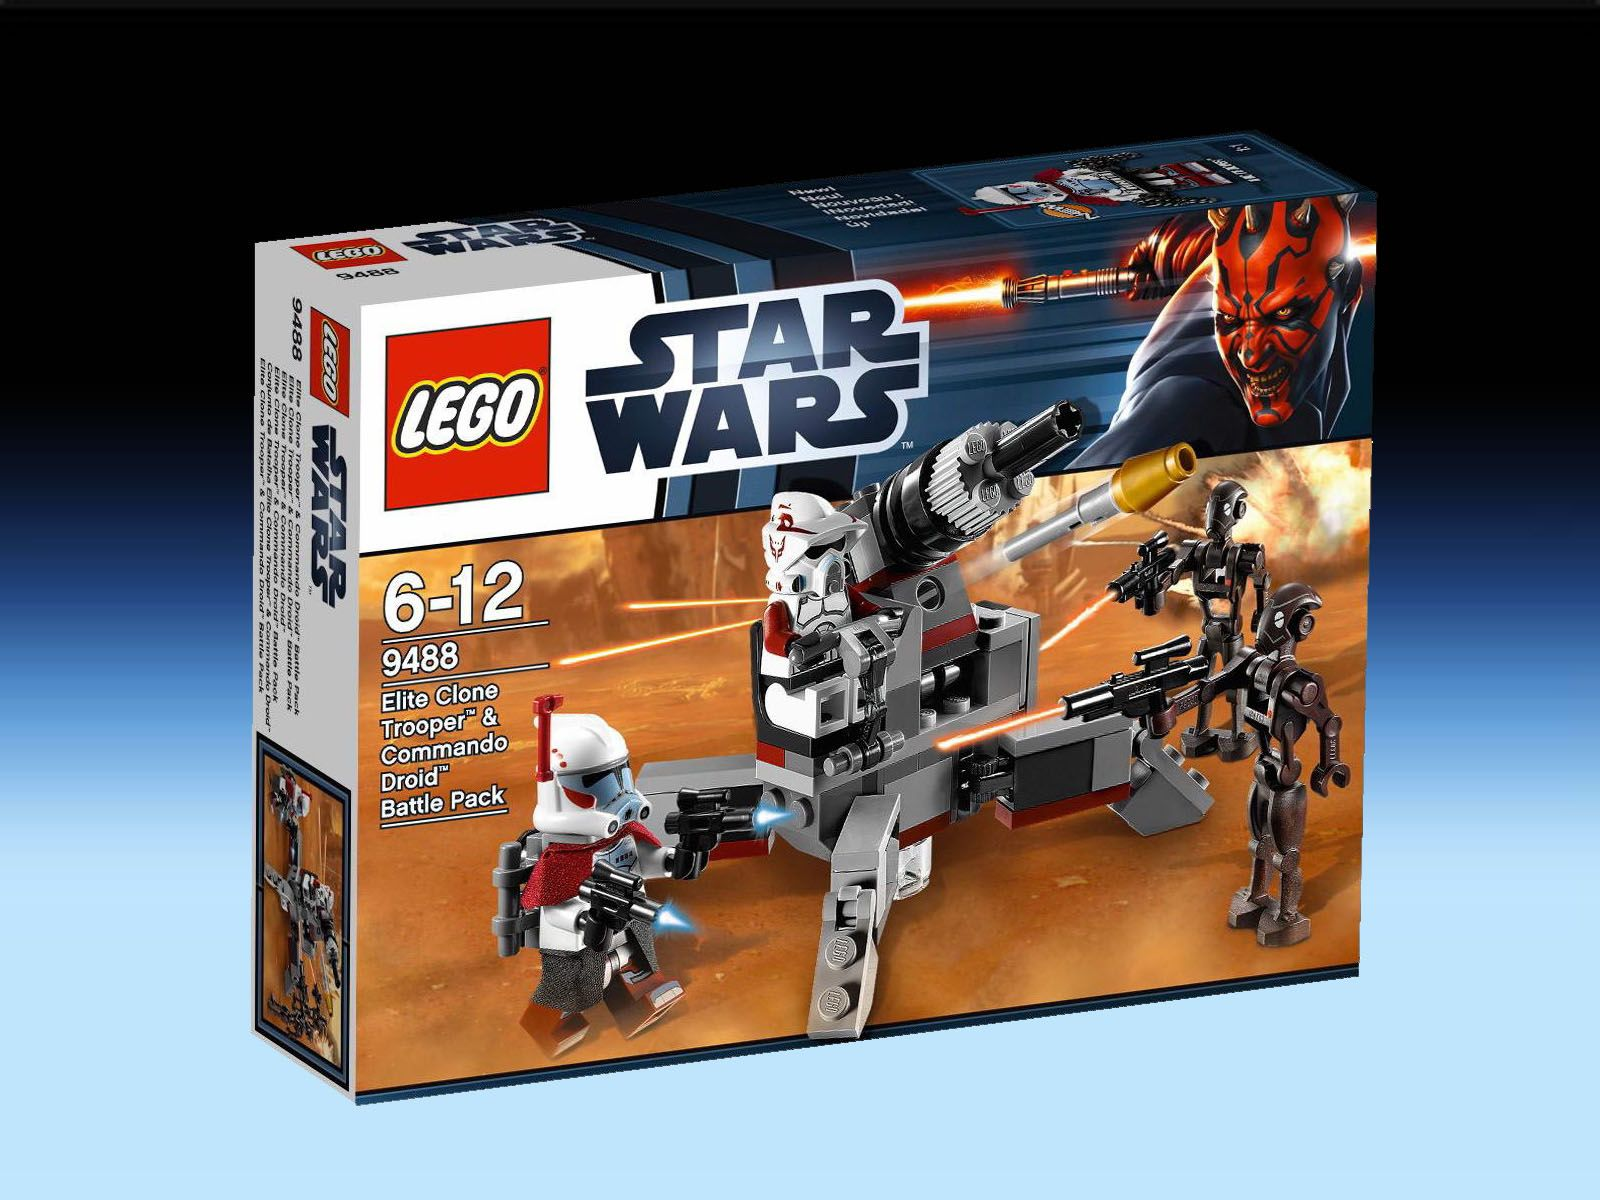 master your force by building the lego star wars play sets featuring vehicles minifigure characters locations and buildable figures from the star wars